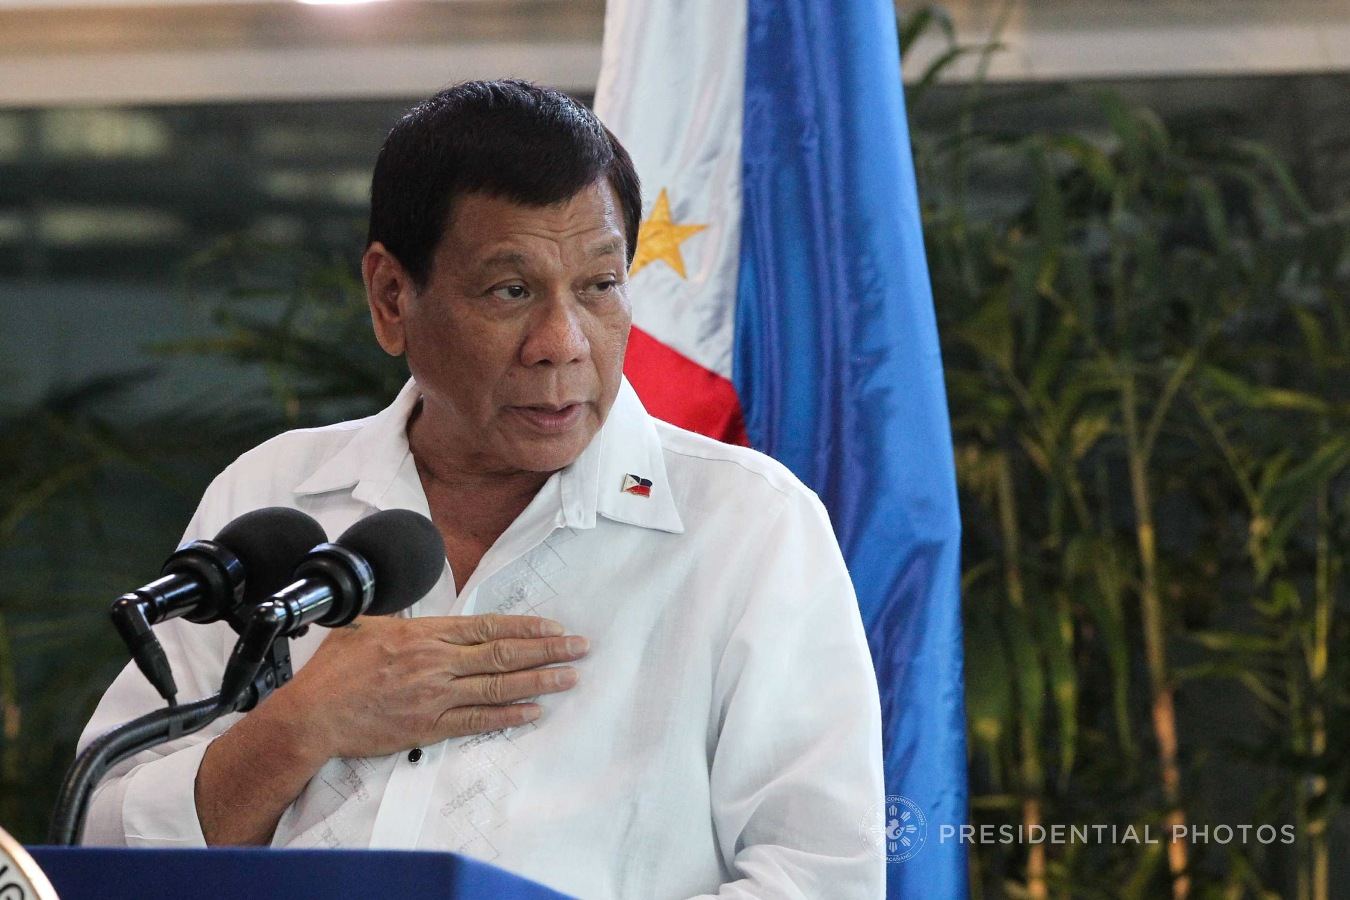 Philippine president: I killed someone when I was 16